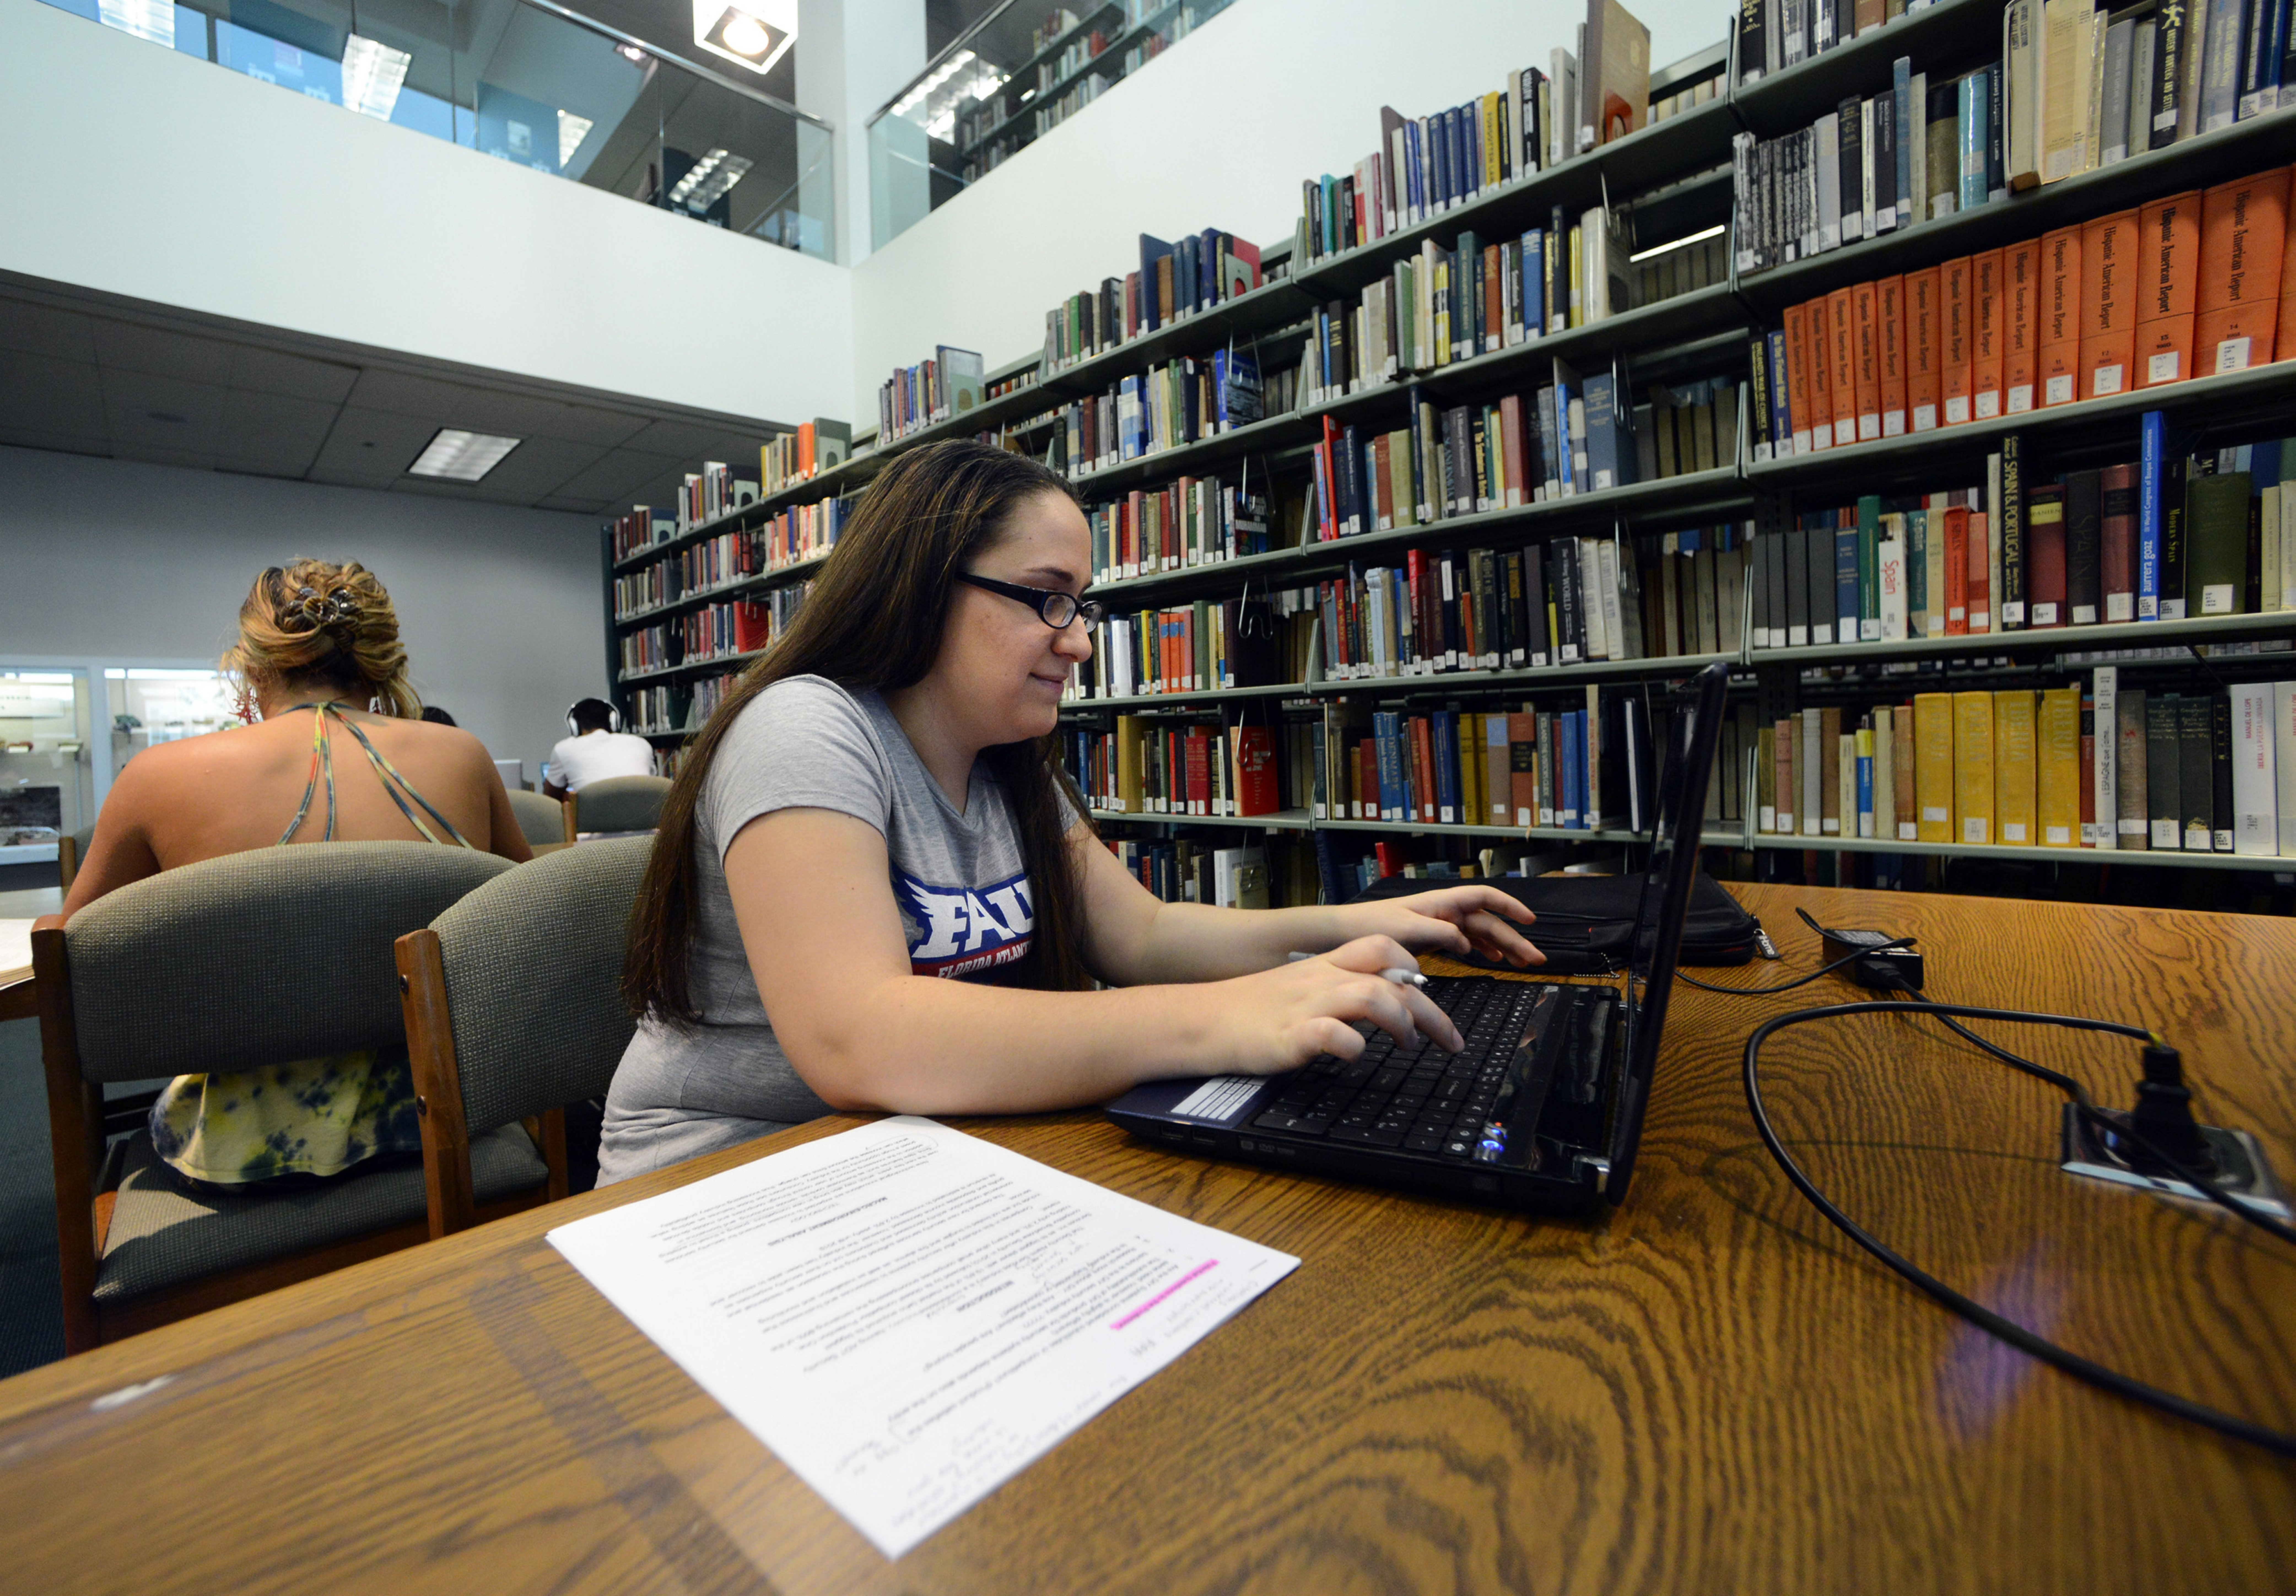 Tara Wengert, 21, of Tamarac, Fla., works on a class project at the S.E. Wimberly Library in Boca Raton, Fla. Wengert is a senior at Florida Atlantic University where she is majoring in hospitality management while working part time.